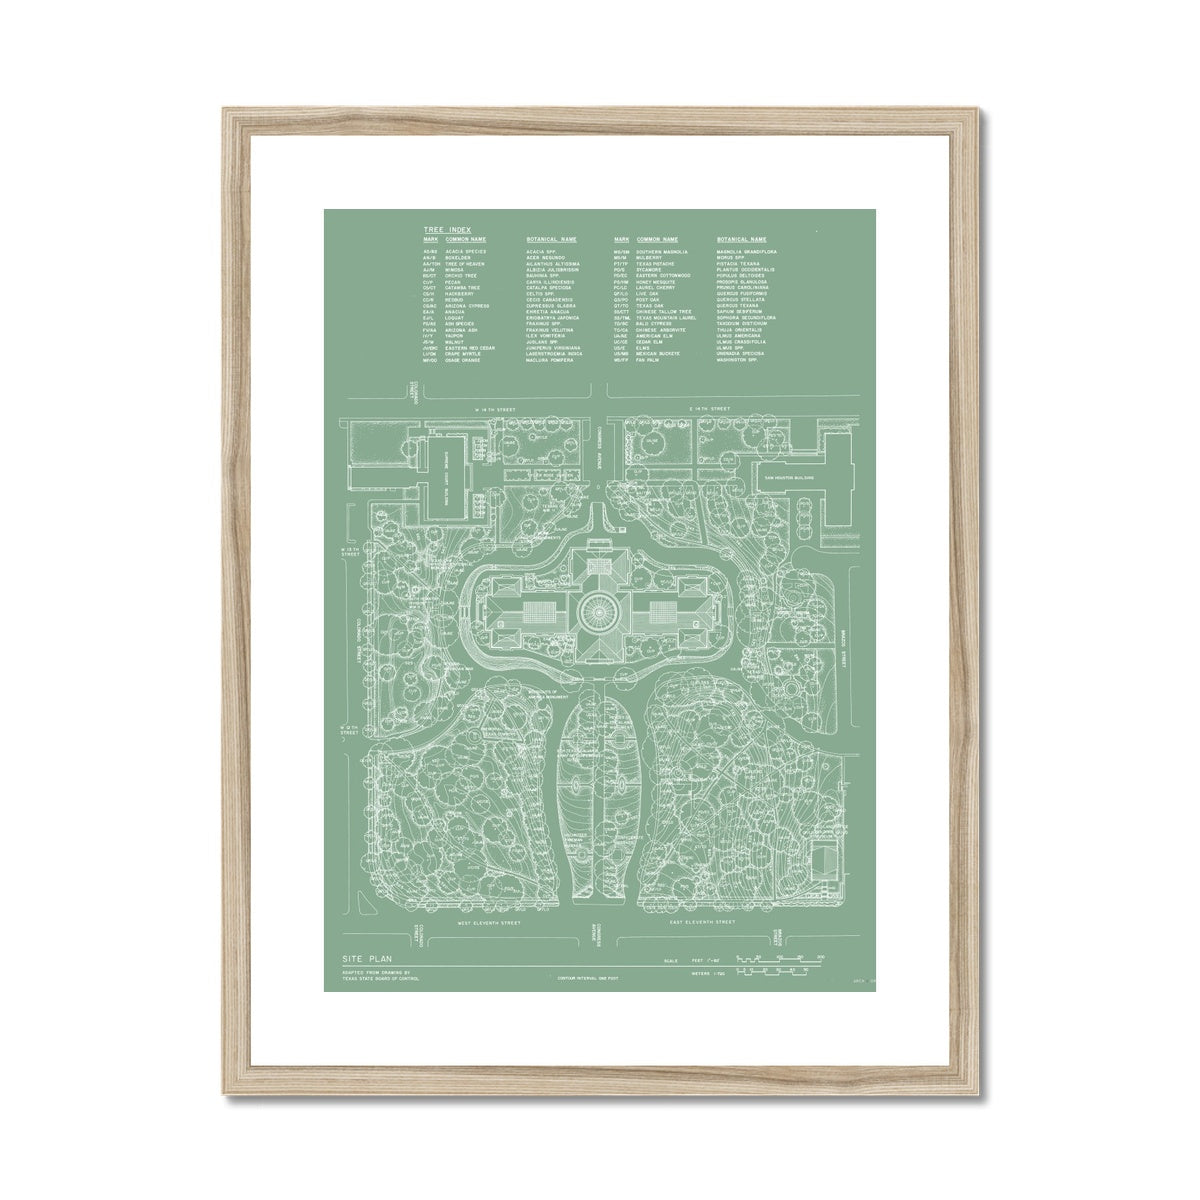 The Texas State Capitol Building - Site and Landscaping Plan - Green -  Framed & Mounted Print